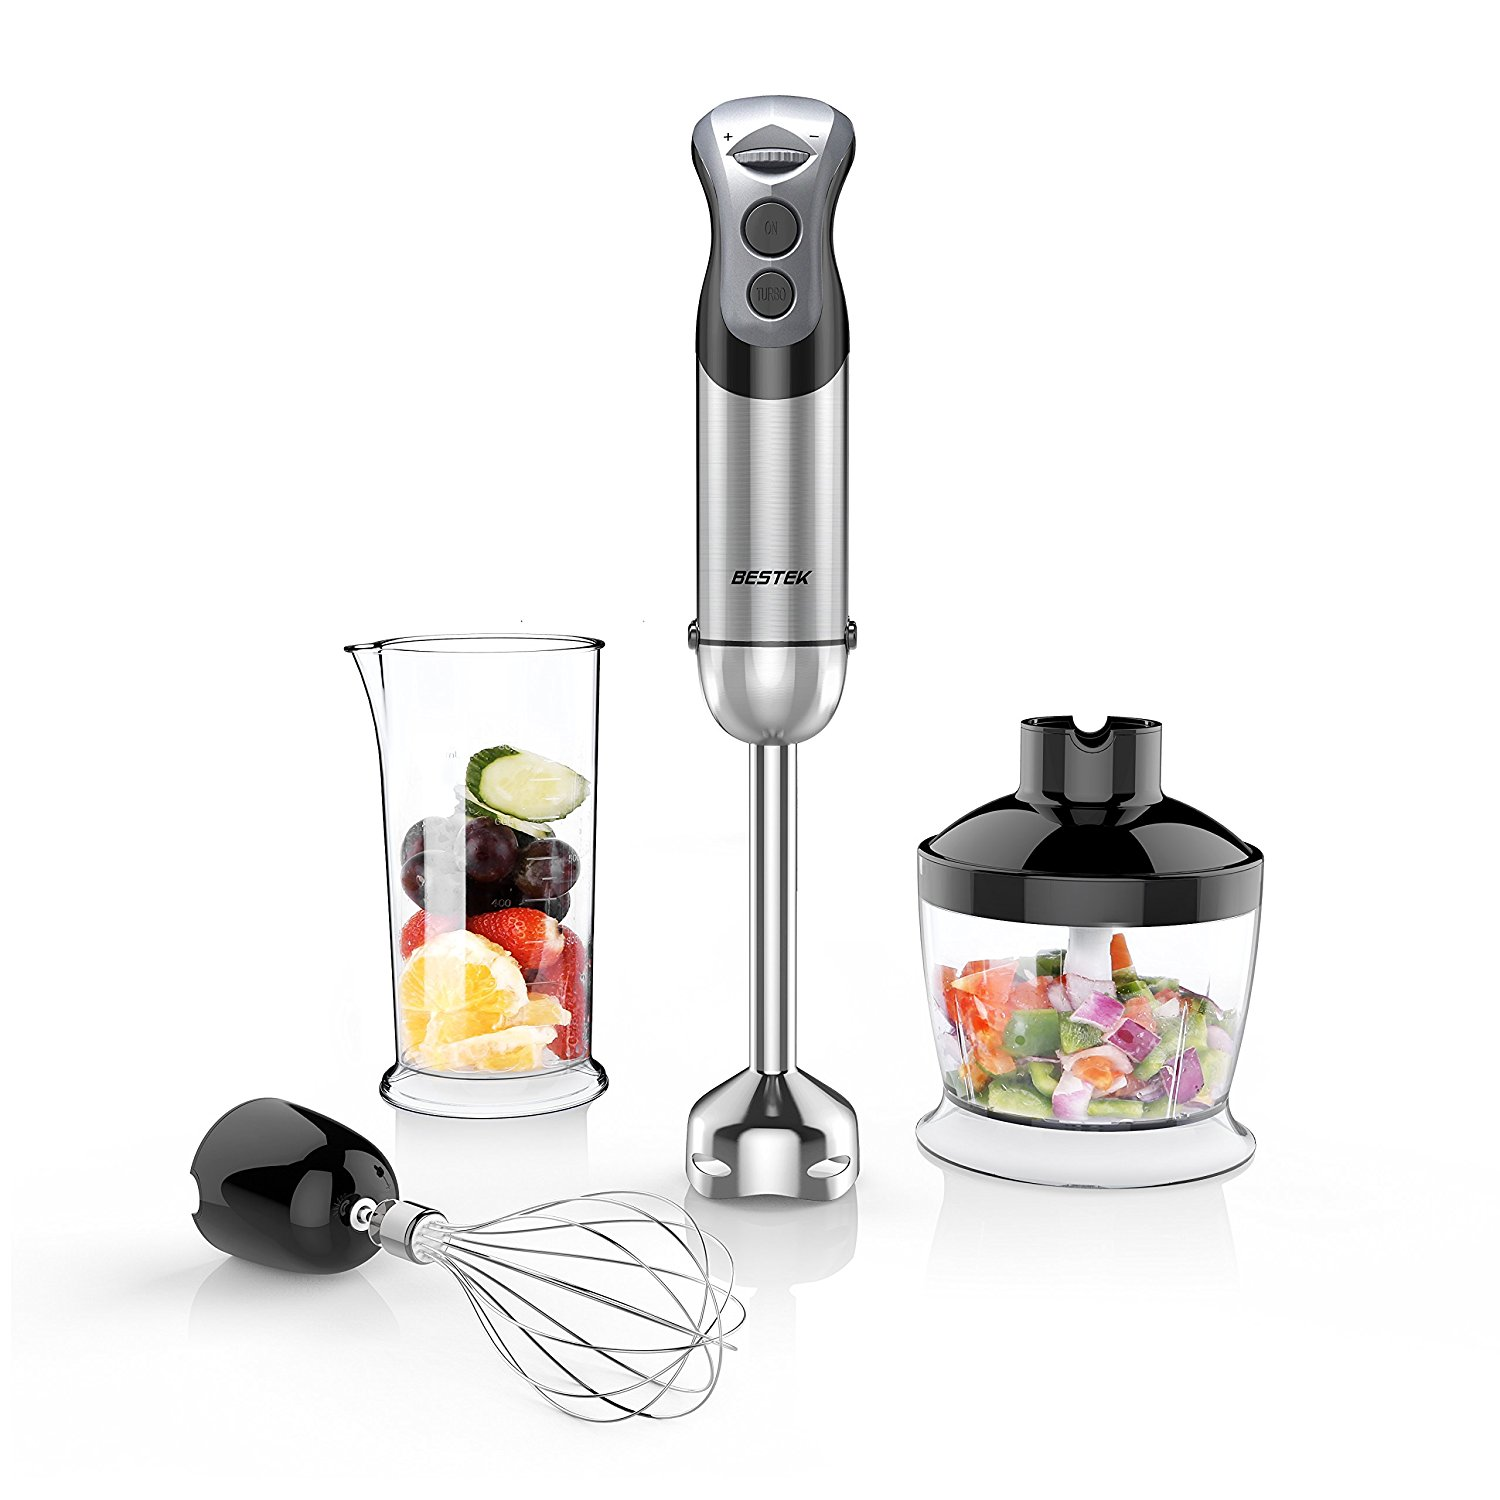 BESTEK Immersion Hand Blender 350 W 2 Speed 4-in-1 Smart Stick Hand Mixer Set with Food Chopper Attachment,... by Bestek